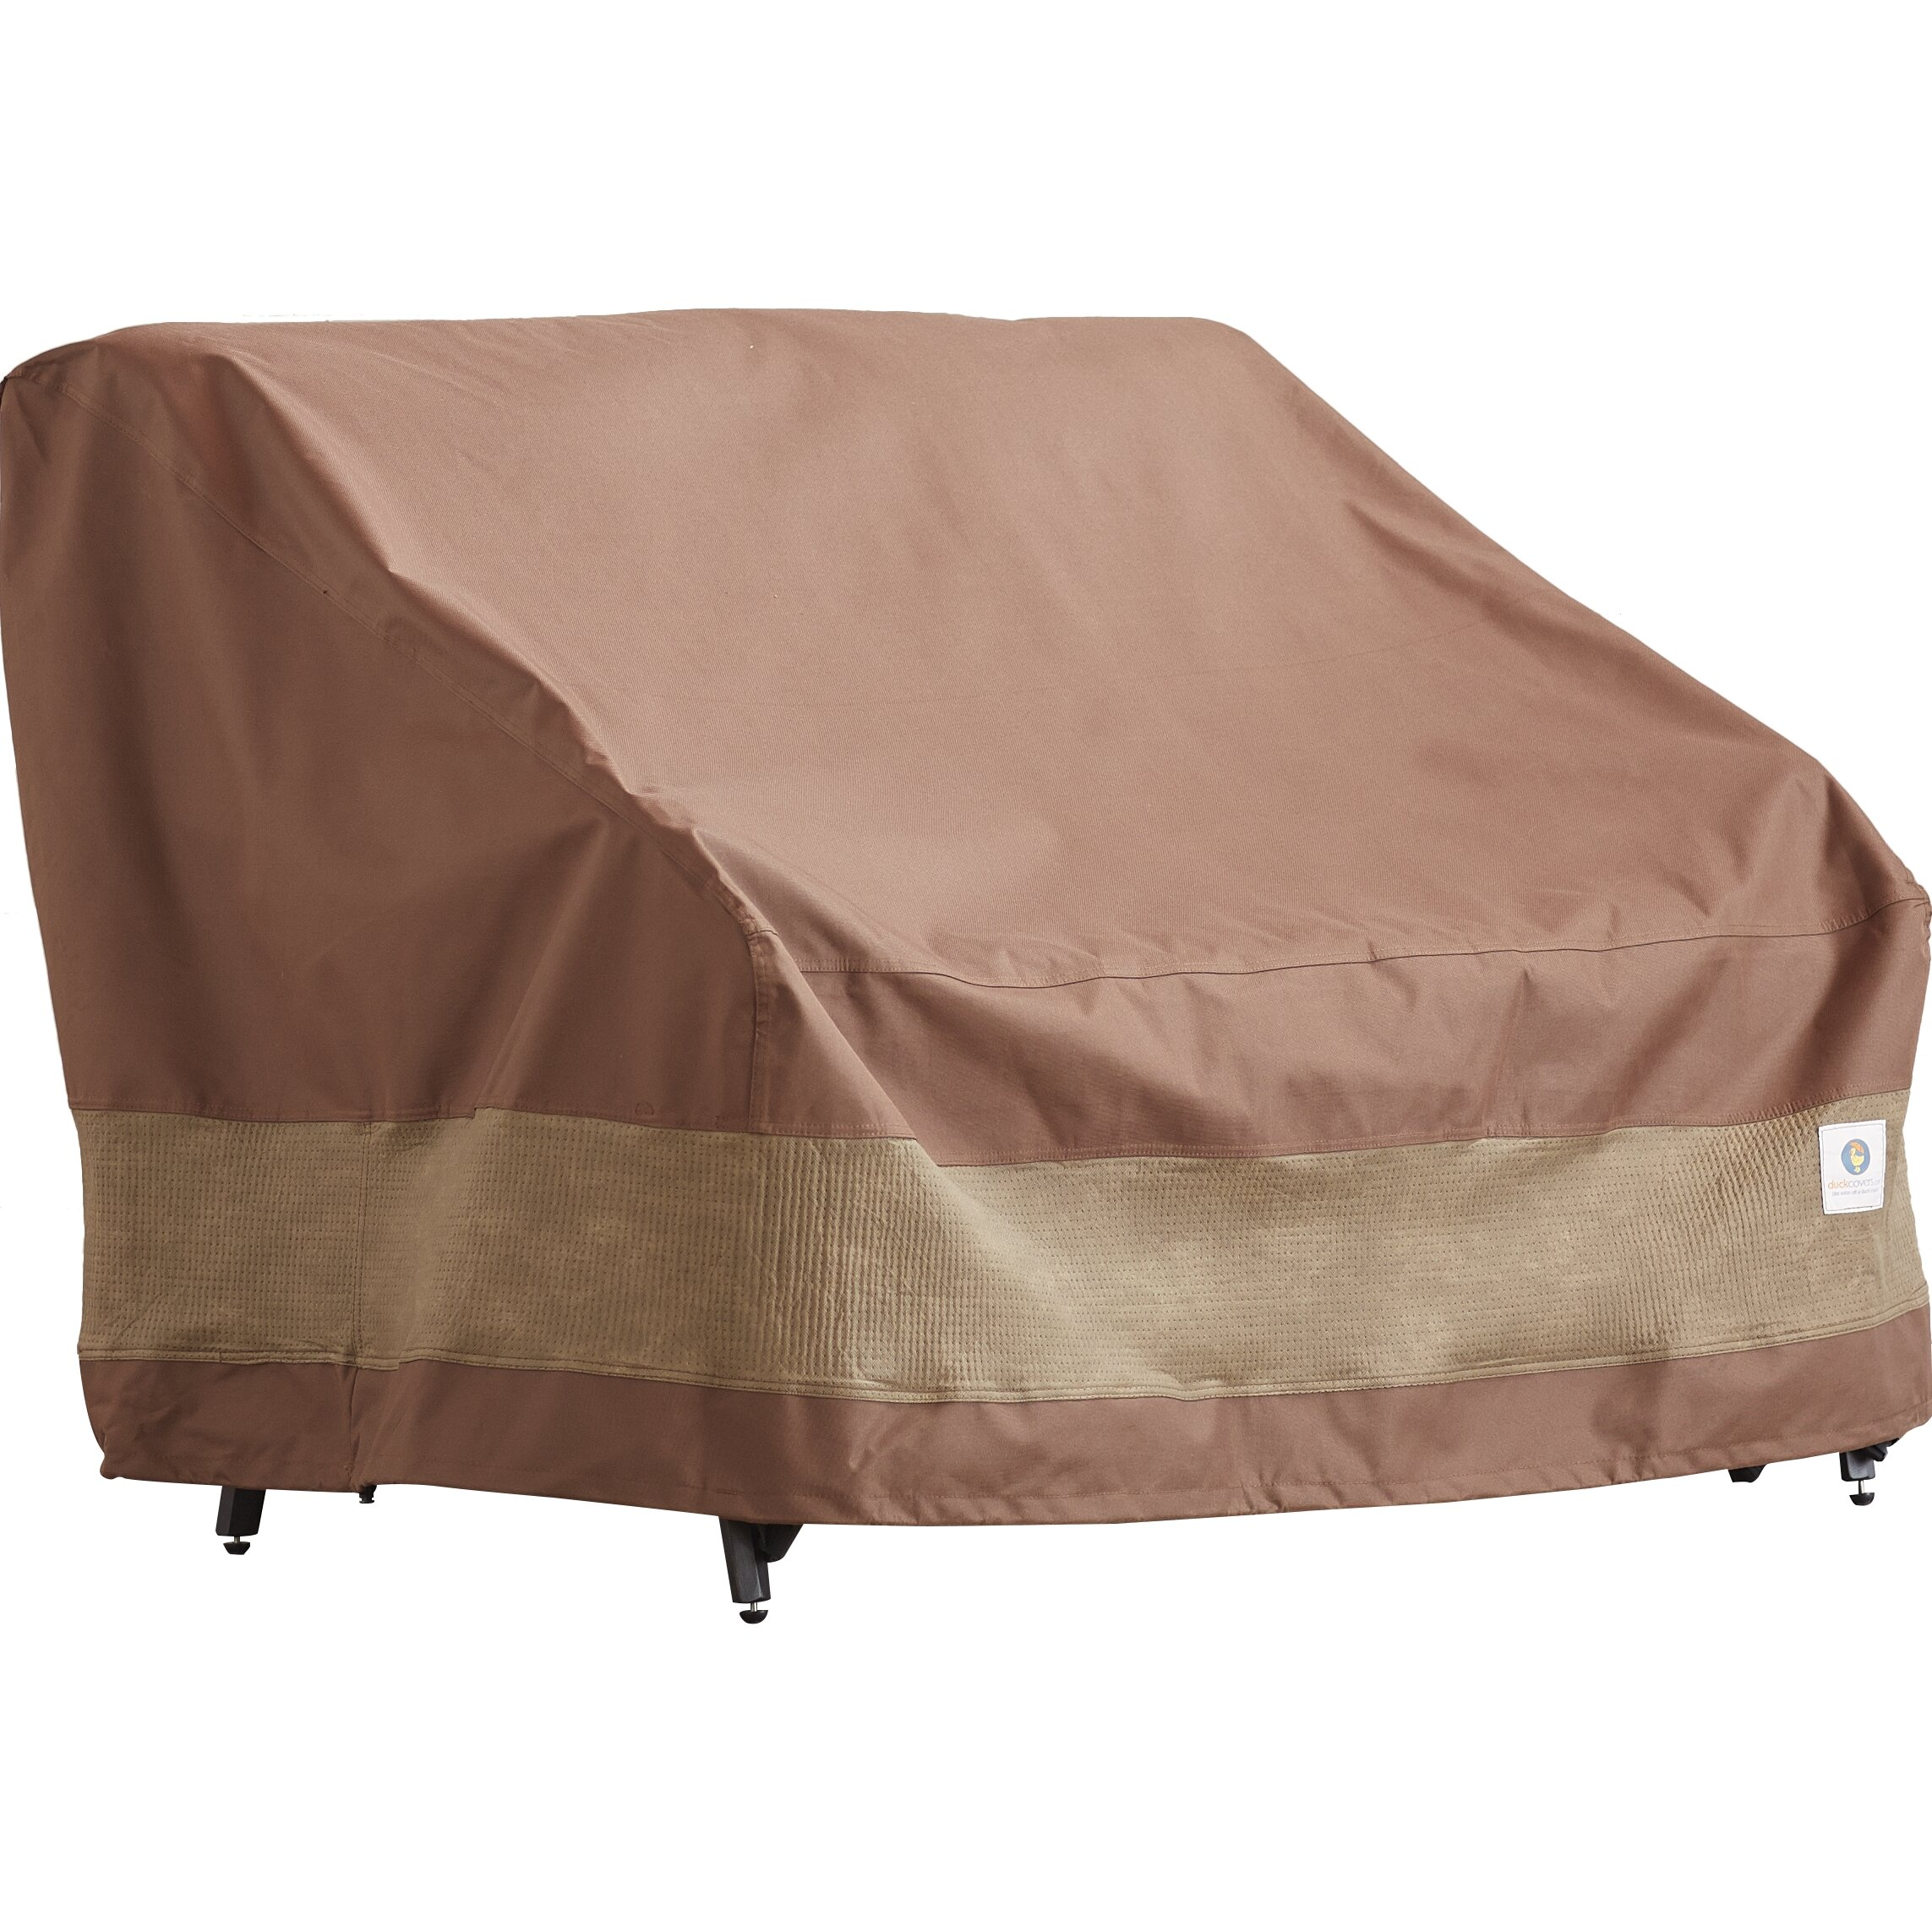 Duck Covers Ultimate Patio Loveseat Cover & Reviews